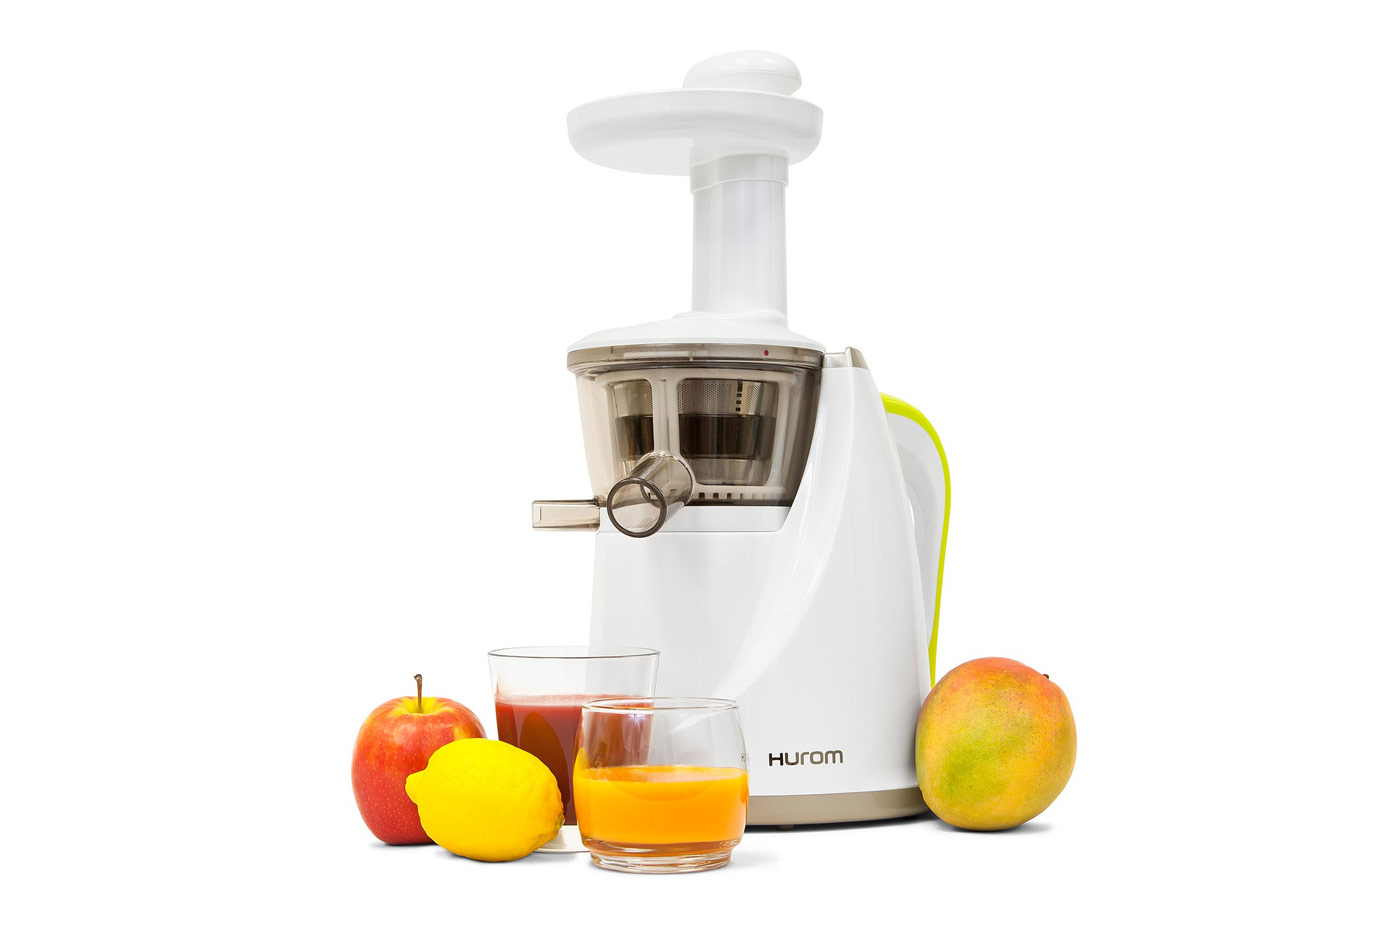 product_Greenling-juicer2.jpg